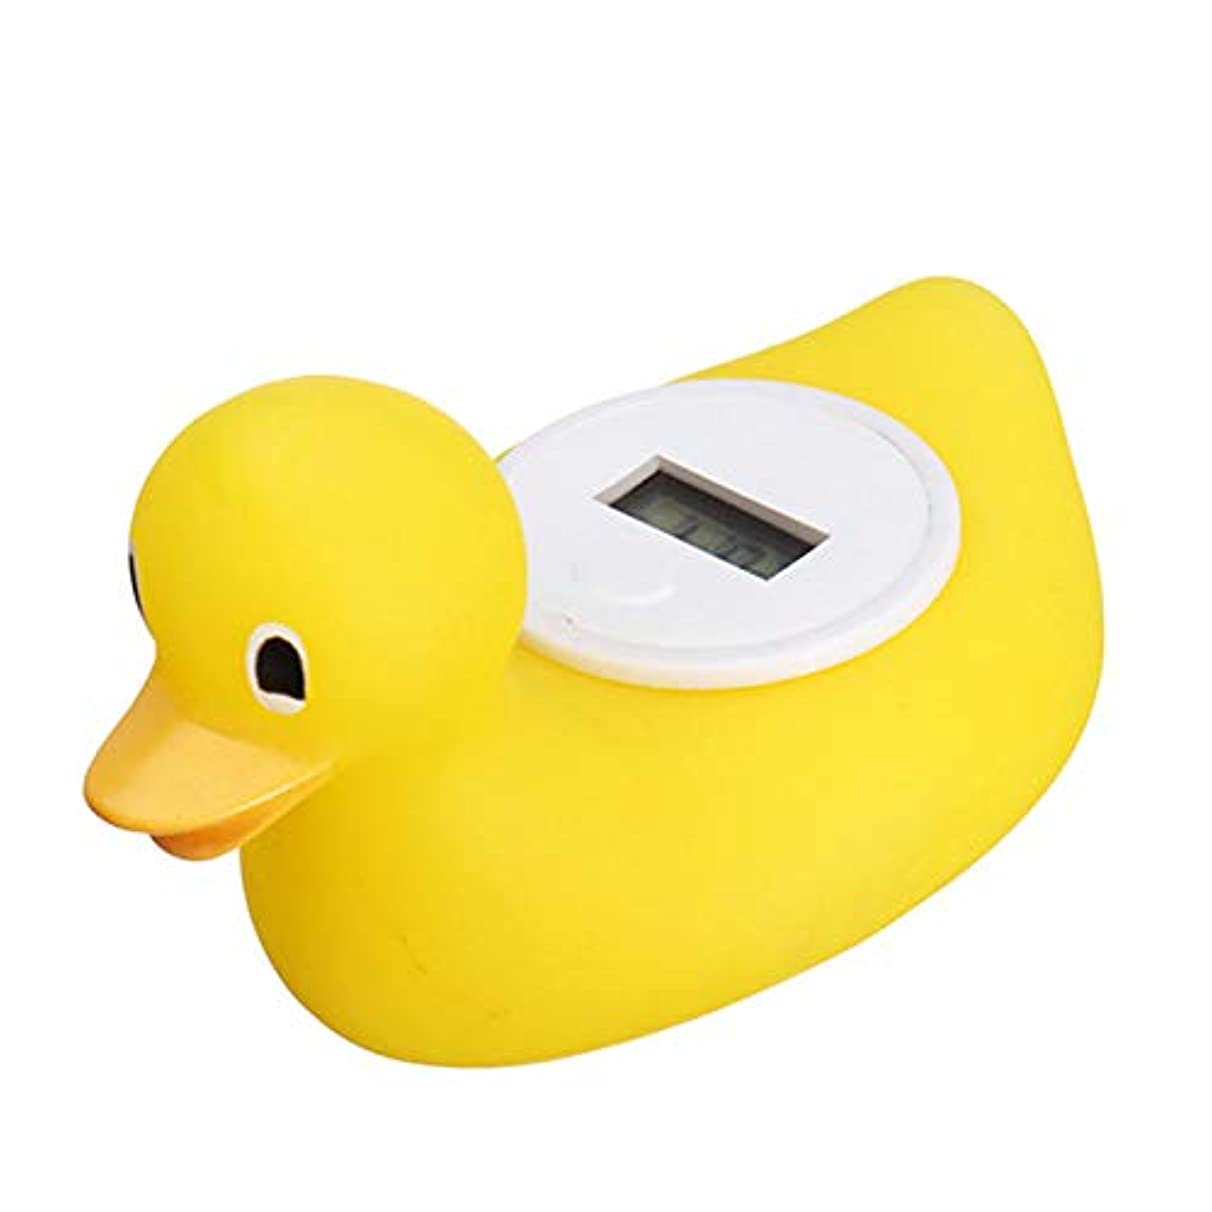 Digital Baby Thermometer Water Sensor Safety Duck Floating Toy Bathroom Fun - Gadget Toys Novelties - 1 × Shower toy set